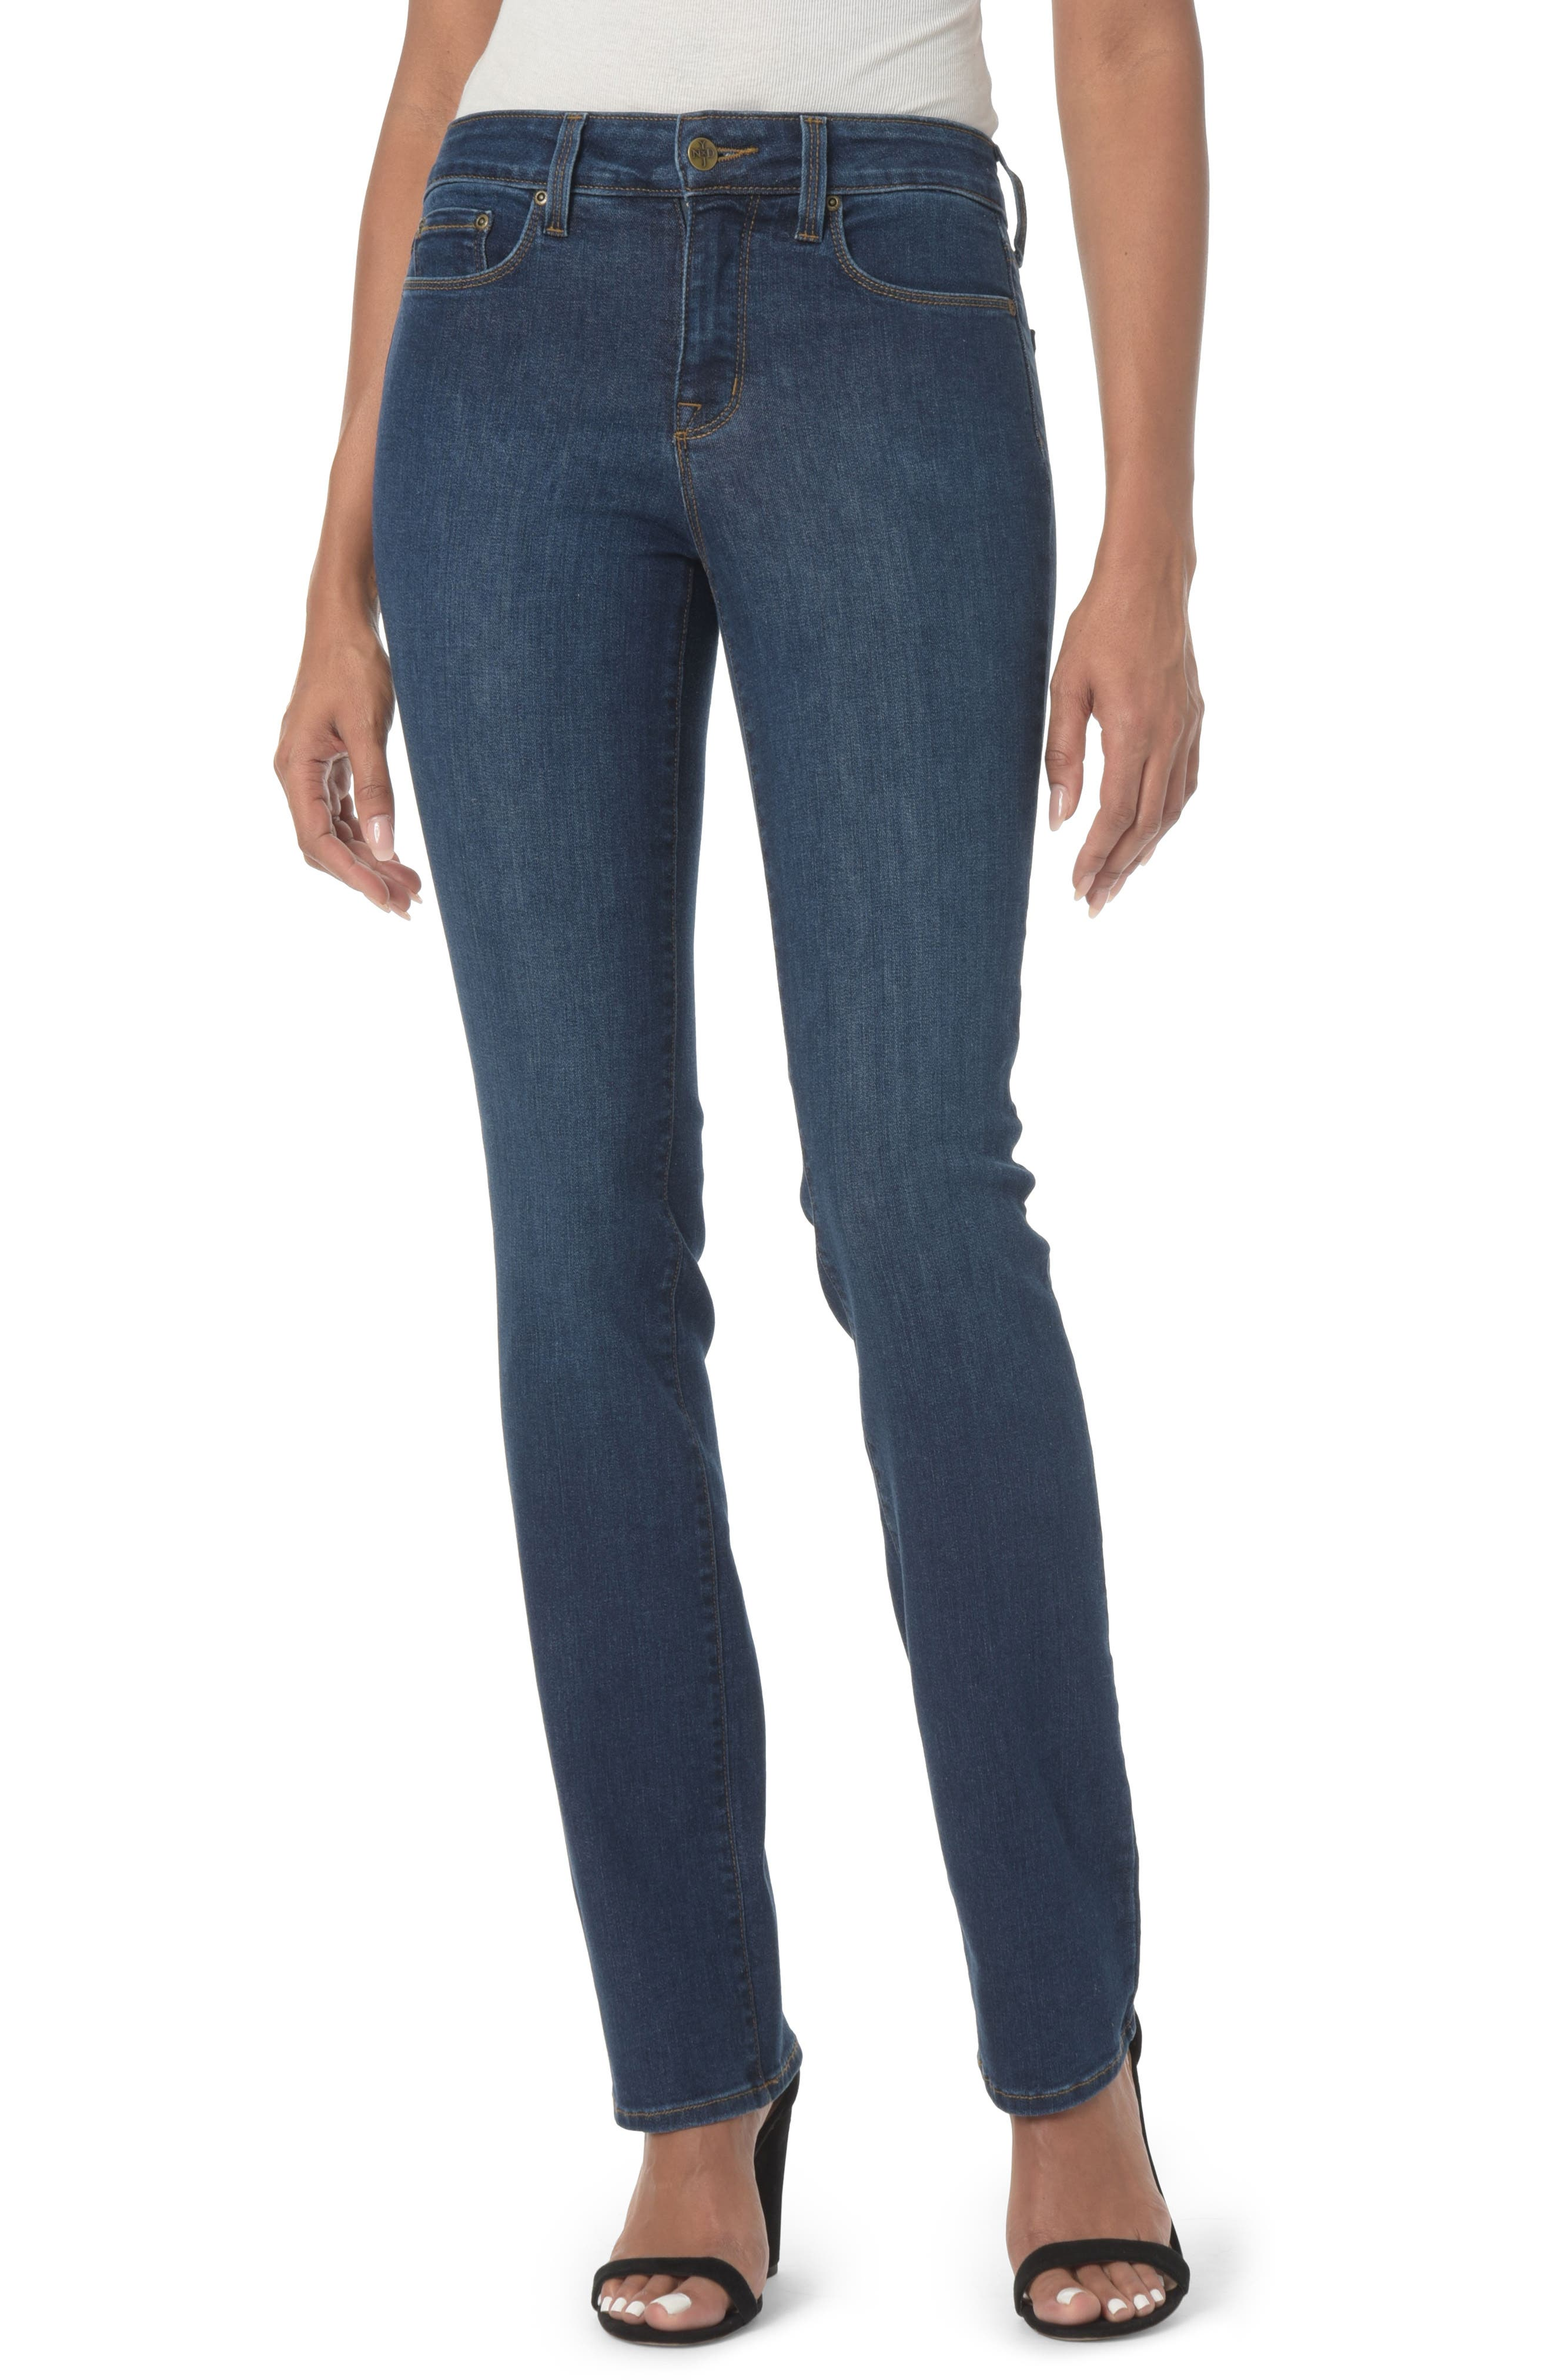 NYDJ, Marilyn High Waist Stretch Straight Leg Jeans, Main thumbnail 1, color, COOPER